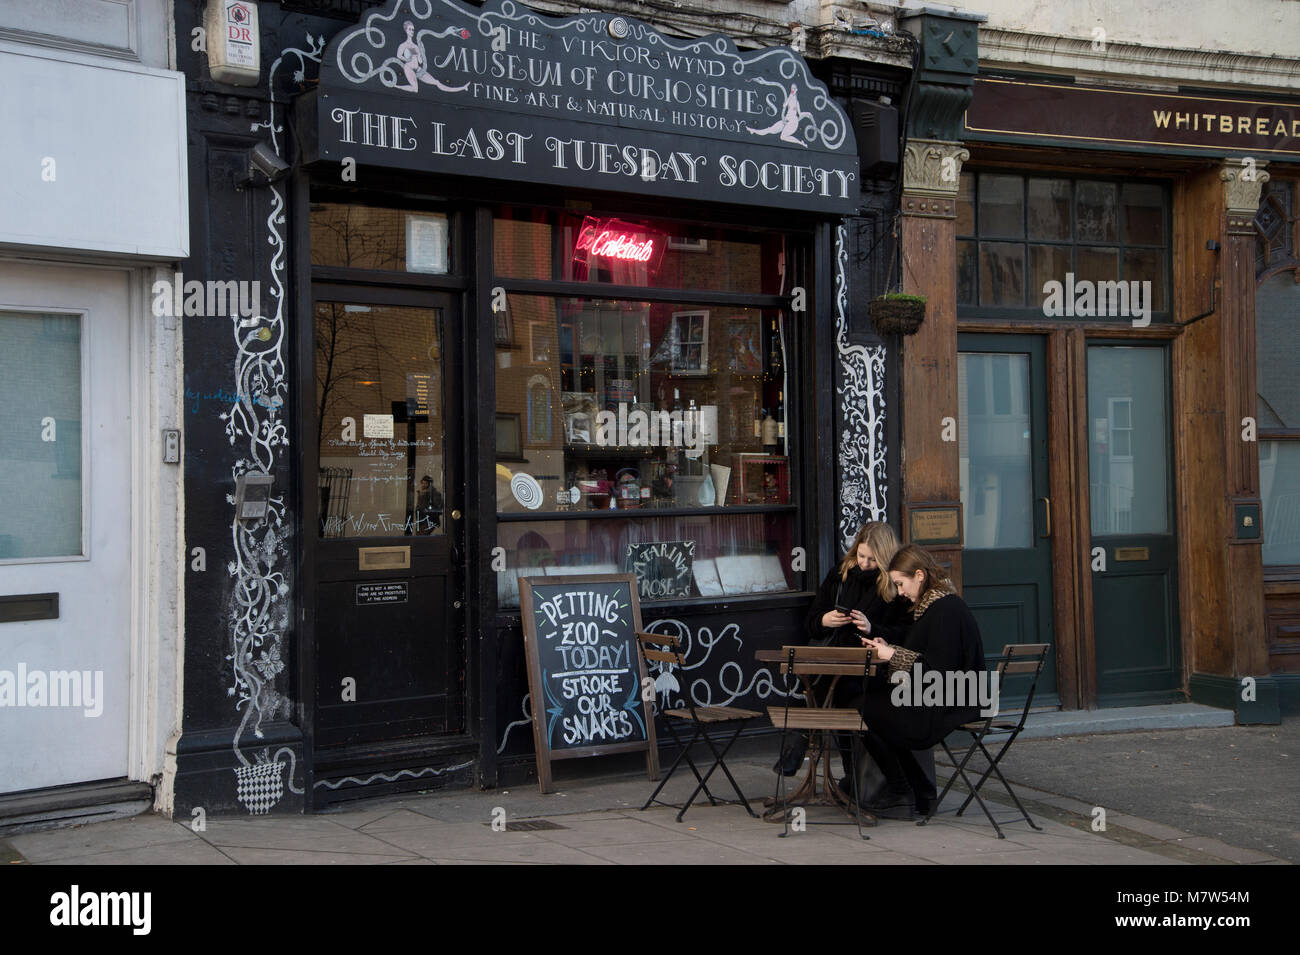 Last Tuesday Society, Museum of Curiosities and Petting Zoo, Mare Street , Hackney - Stock Image